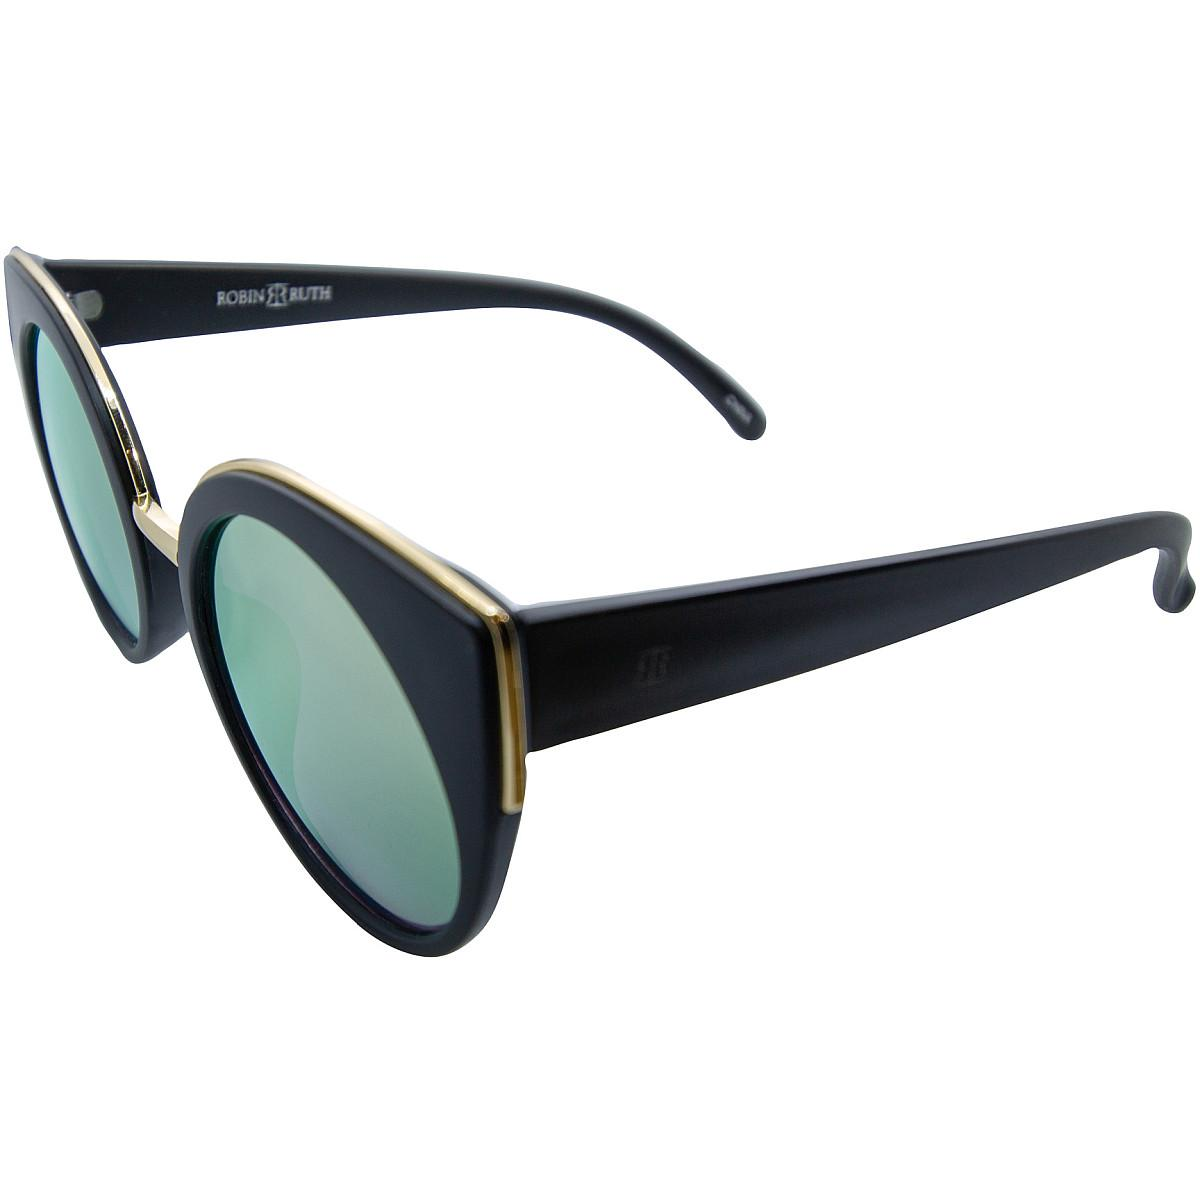 7967df281f7 Details about ROBIN RUTH CATTY LIMITED COLLECTION DESIGNER SUNGLASSES-GREEN